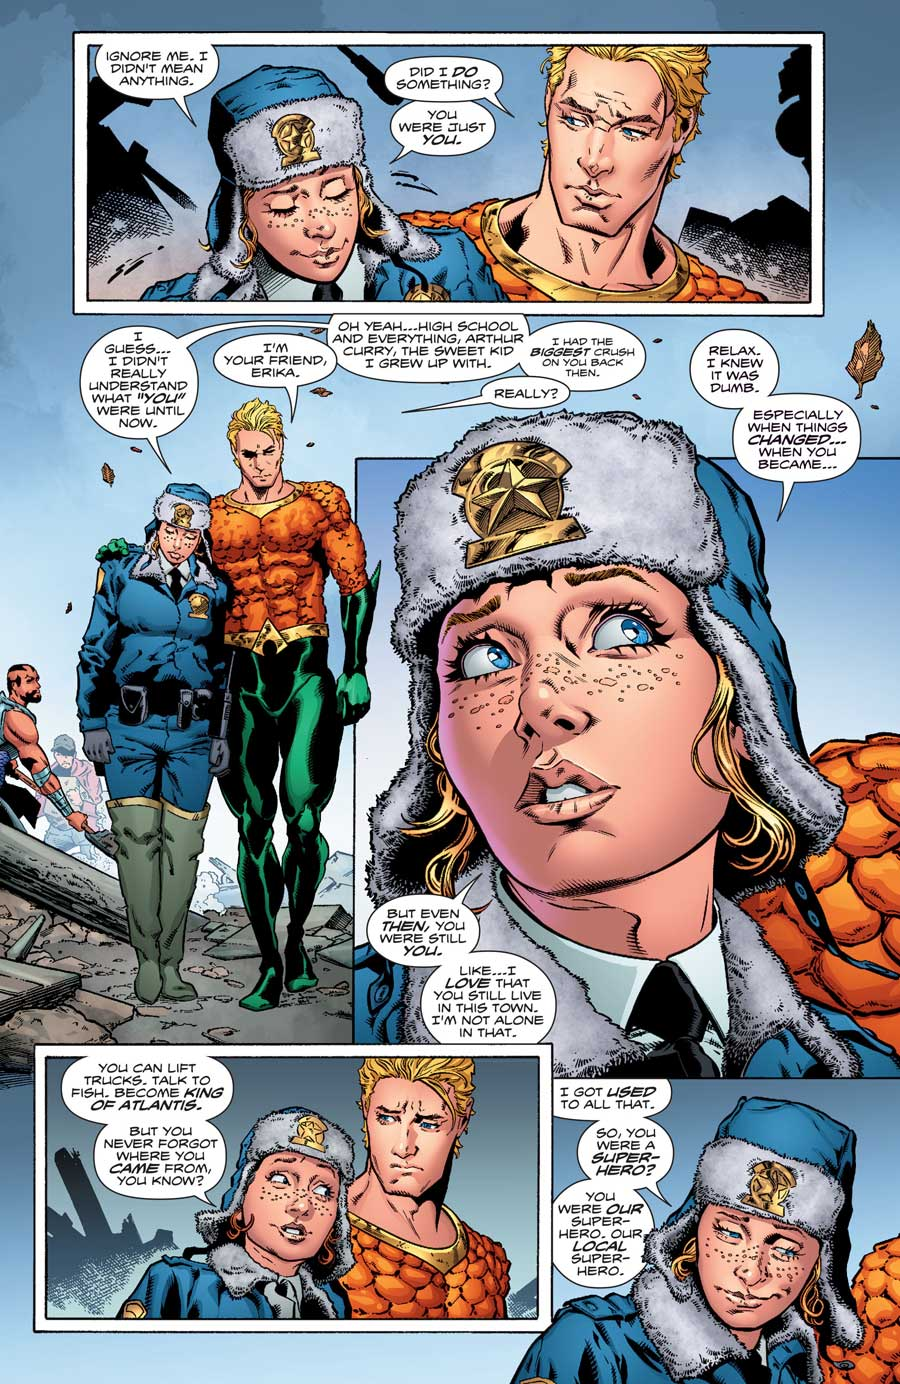 AQUAMAN #16 by Dan Abnett, Brad Walker and Andrew Hennessy